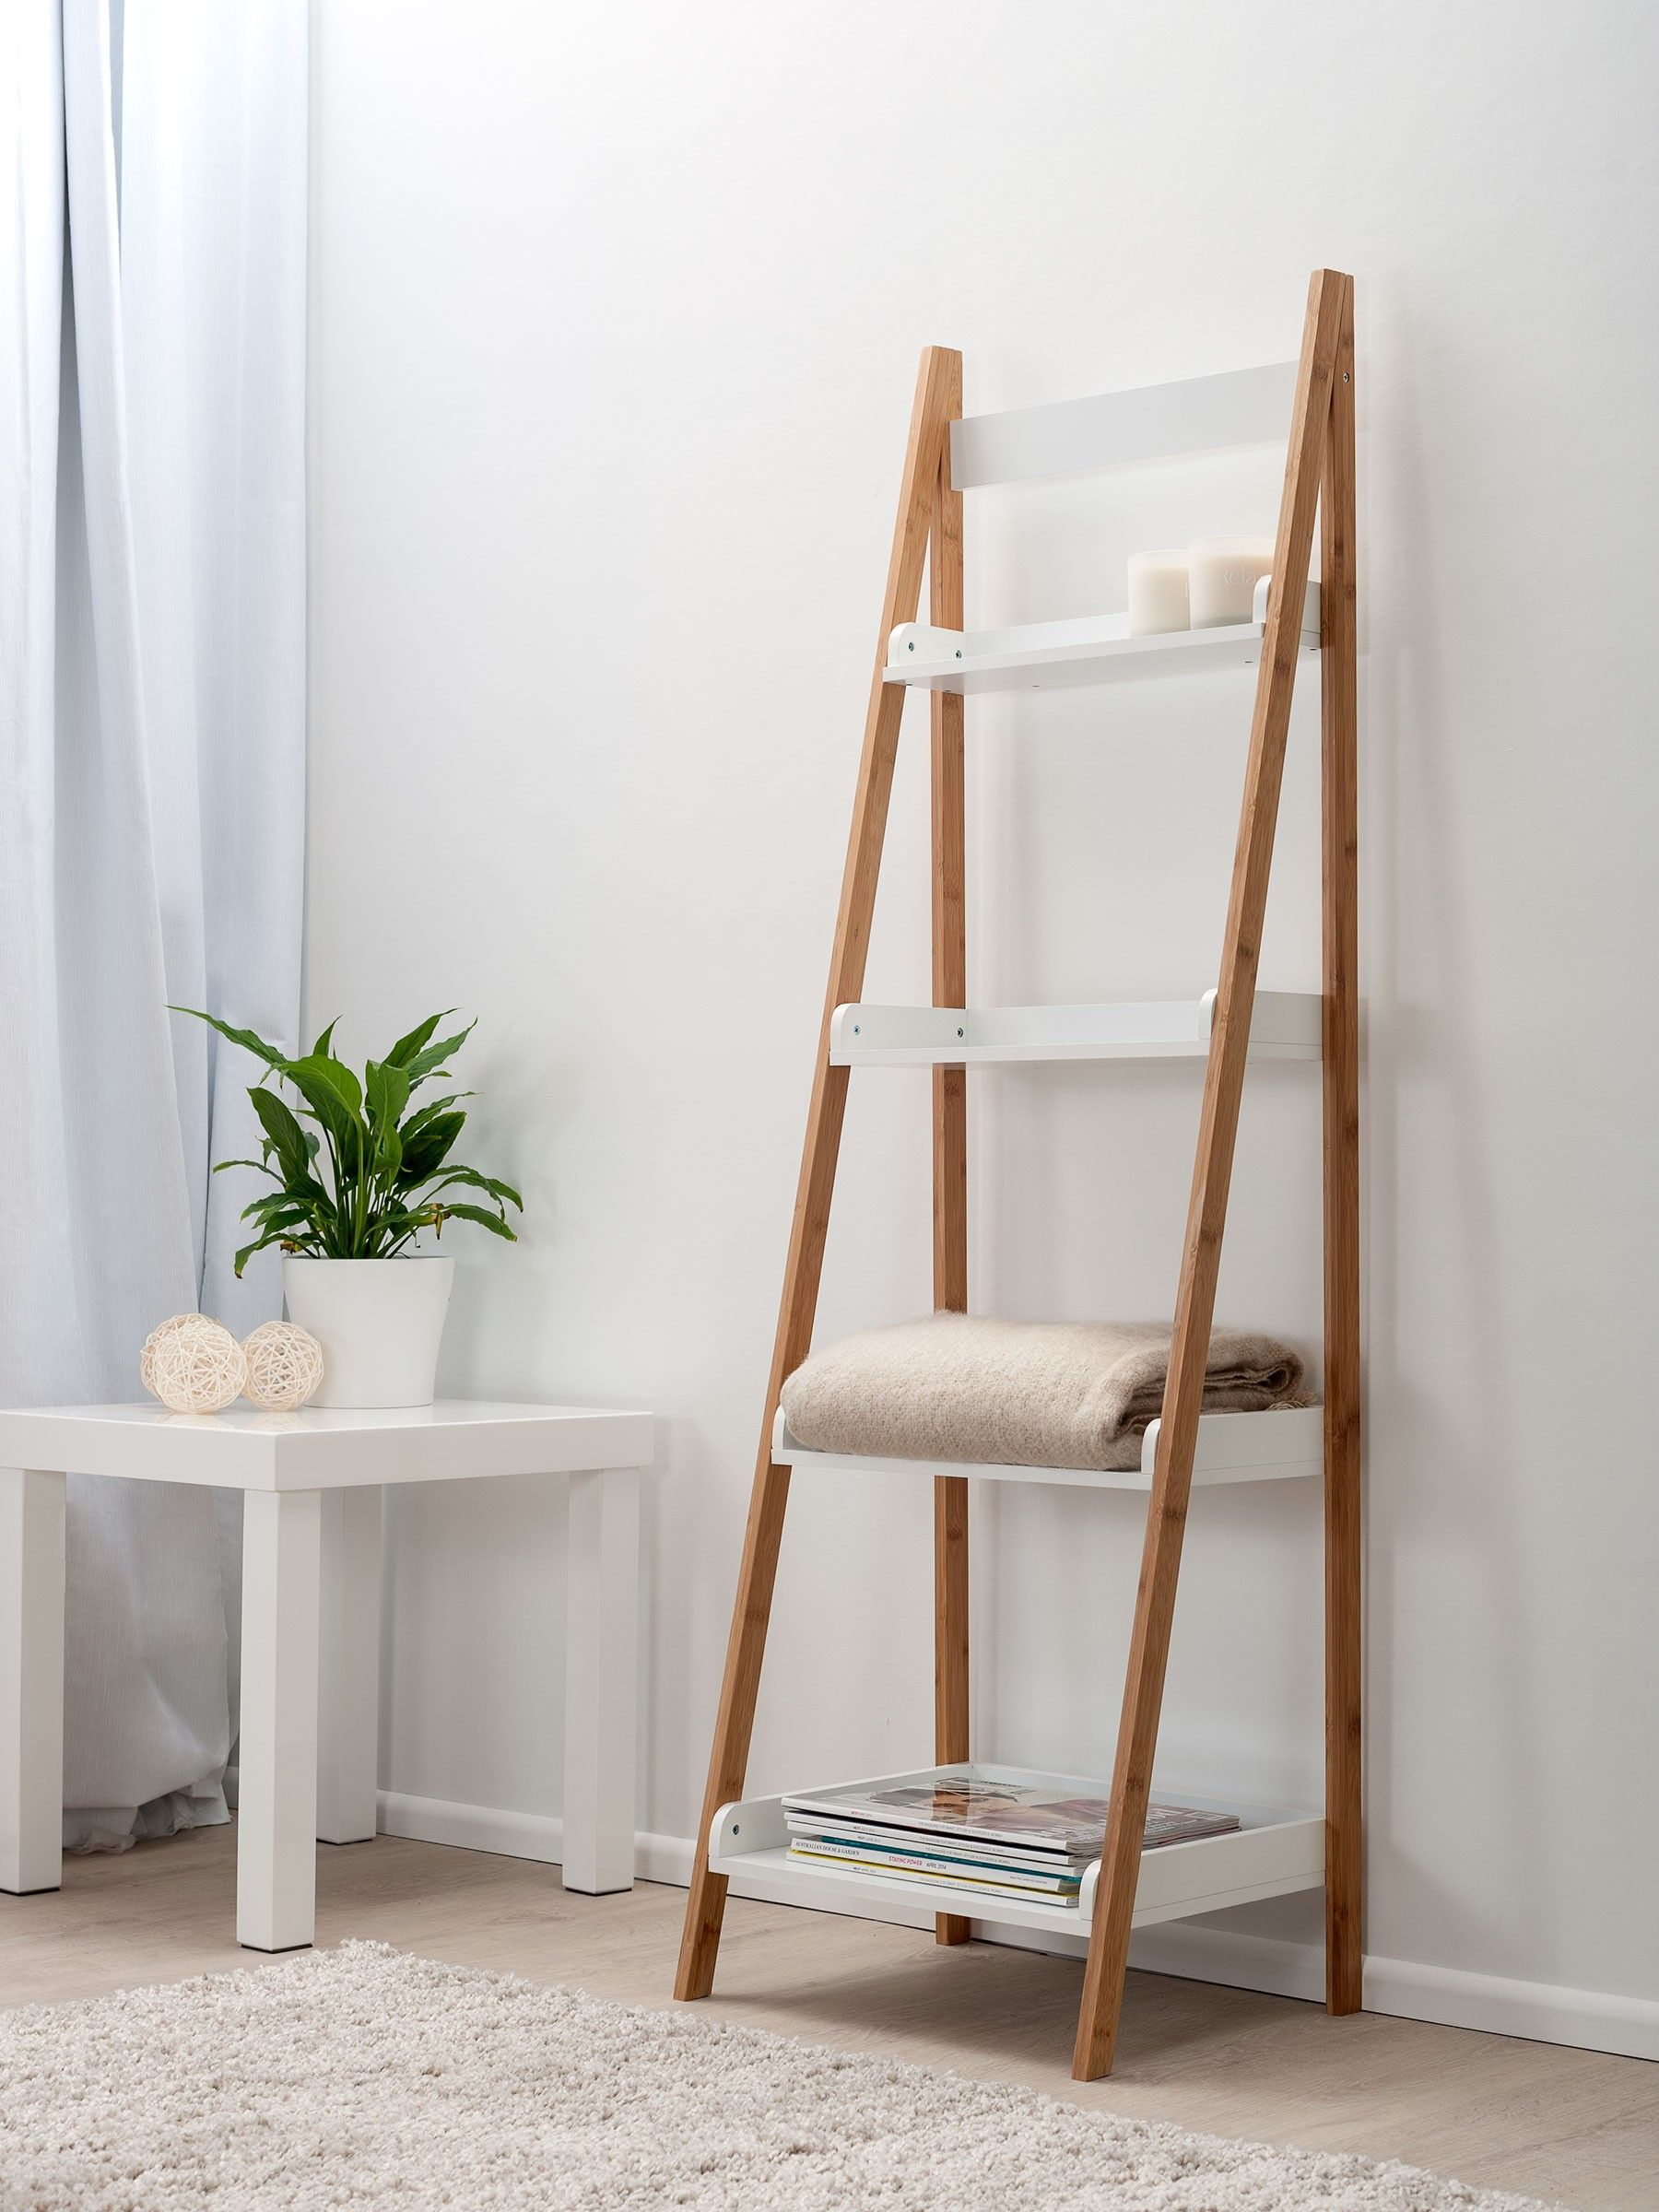 Bookshelf Captivating Ladder White Bookcase Brown With Woods Leaning Shelf Towel Table Ih Pot Plant Awesome